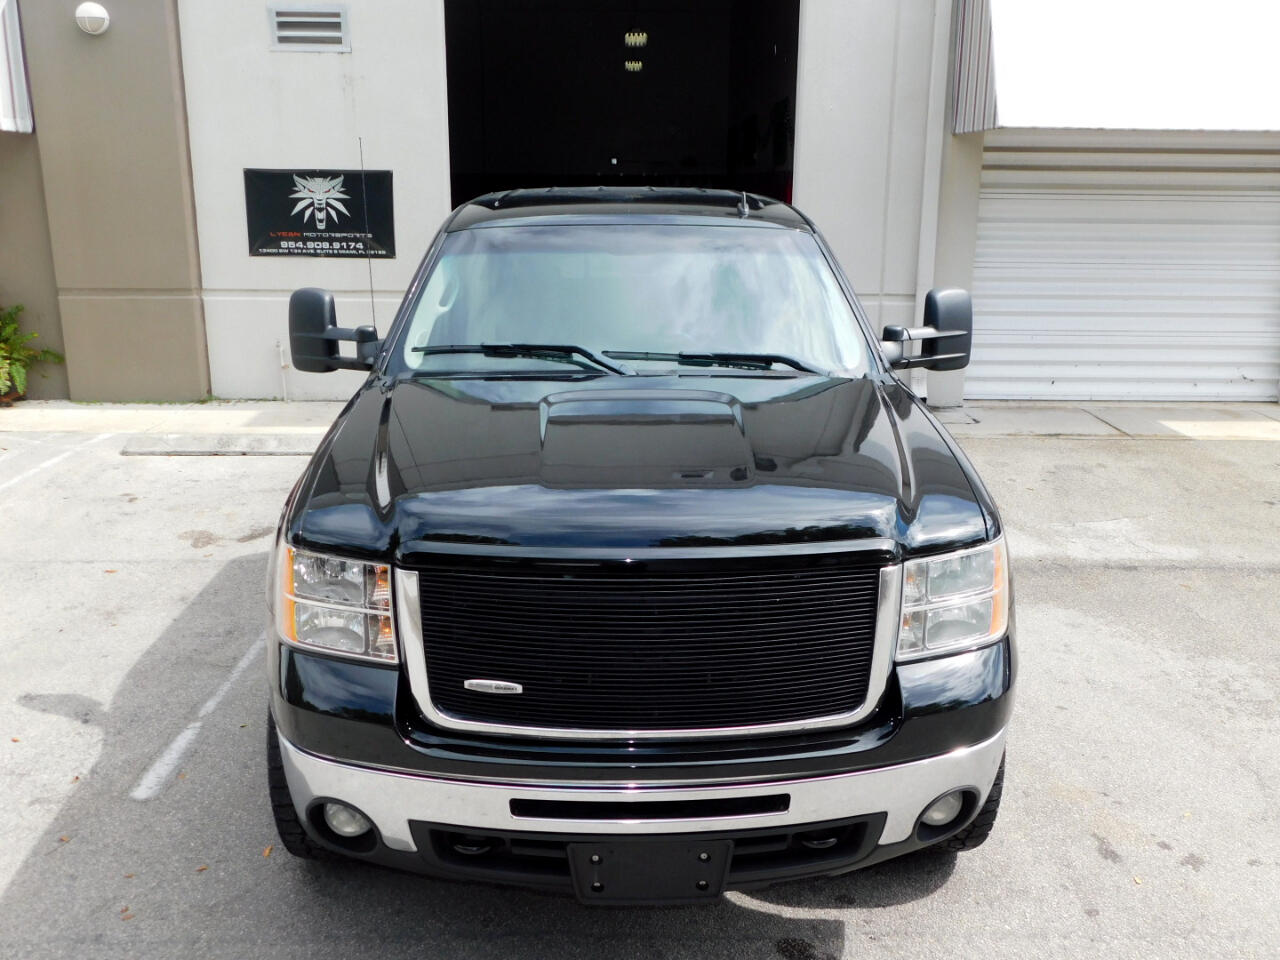 2009 GMC Sierra 2500HD SLT Crew Cab Long Box 4WD